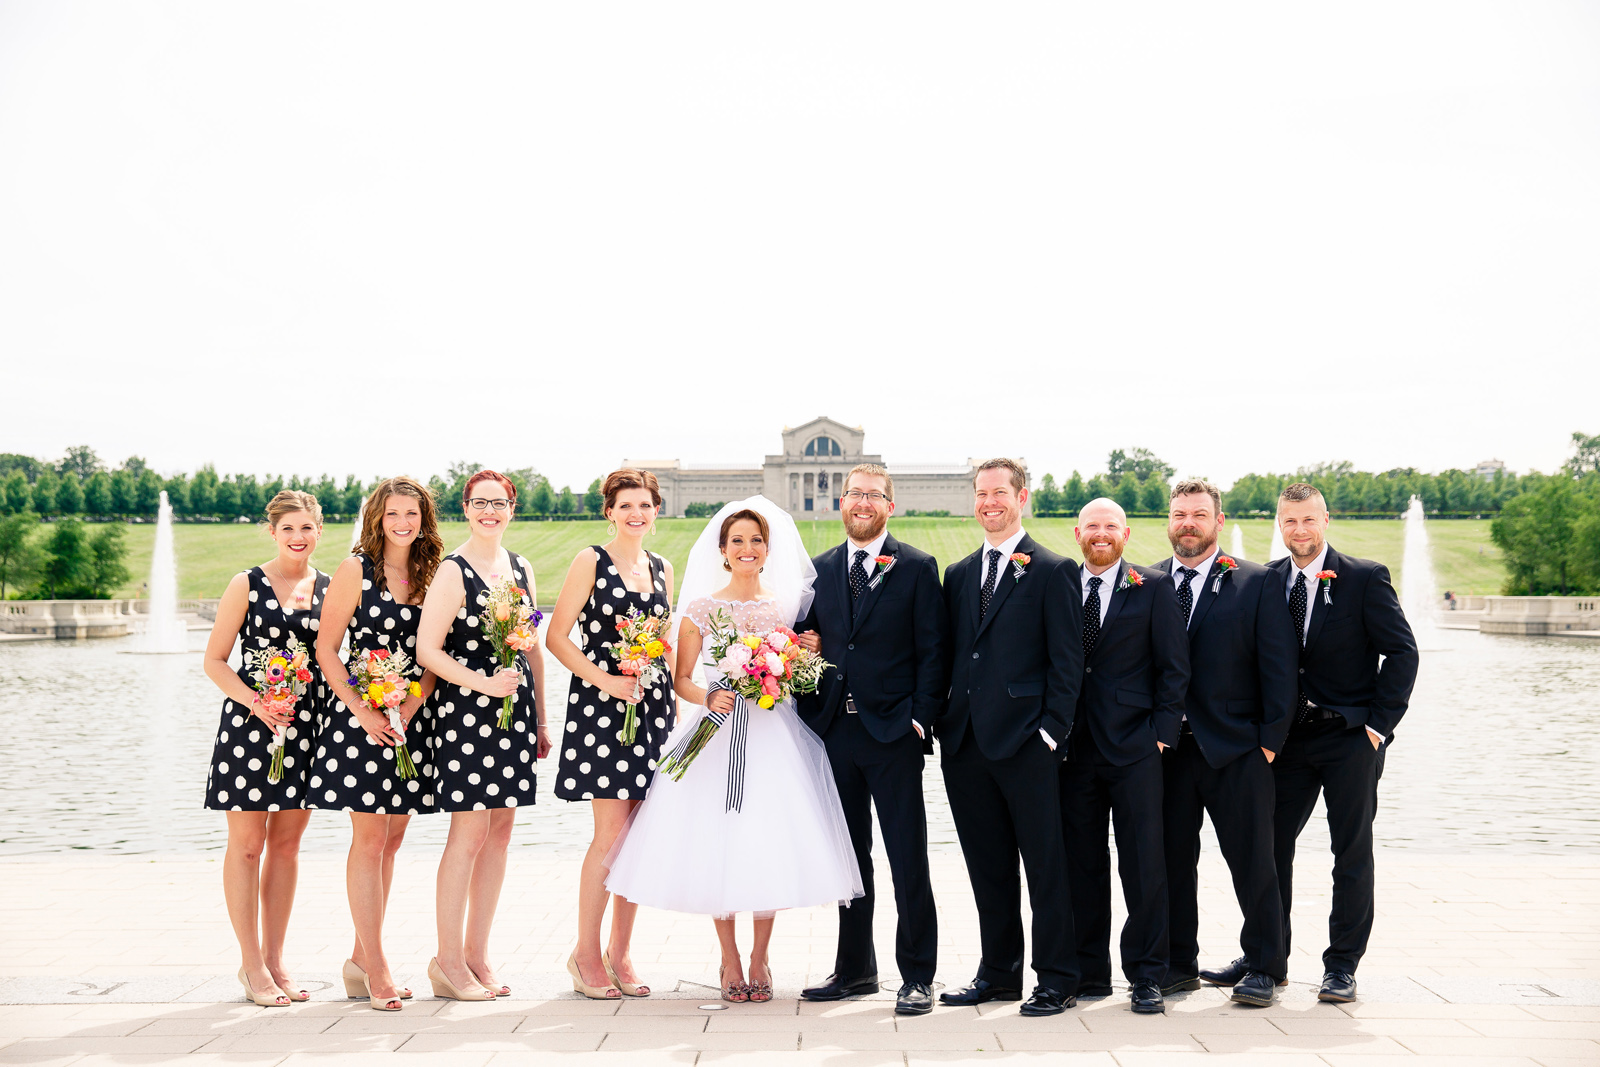 Wedding Day Photos in Forest Park - Black and White Color Theme